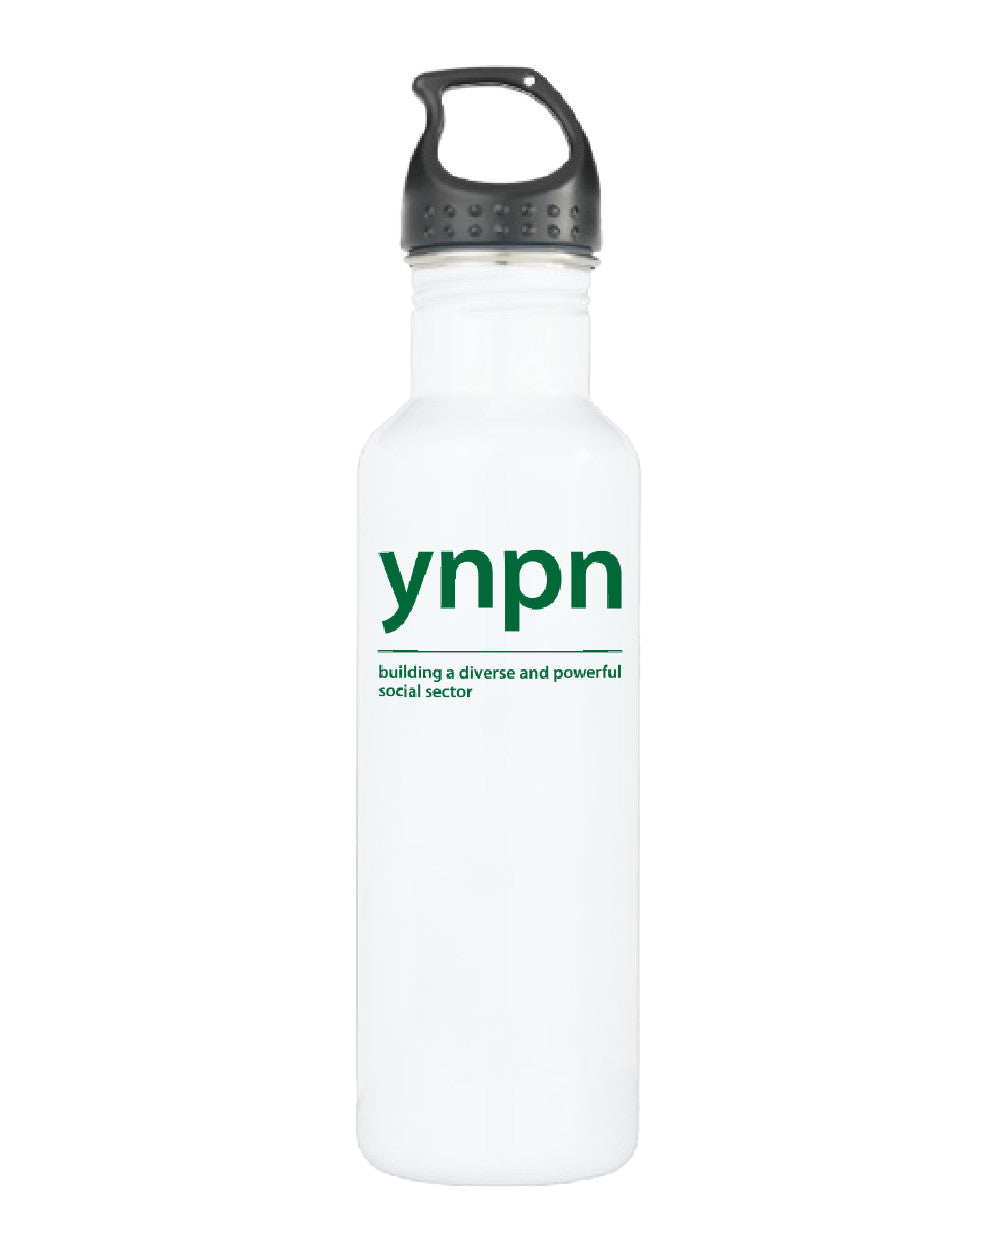 YNPN Water Bottle